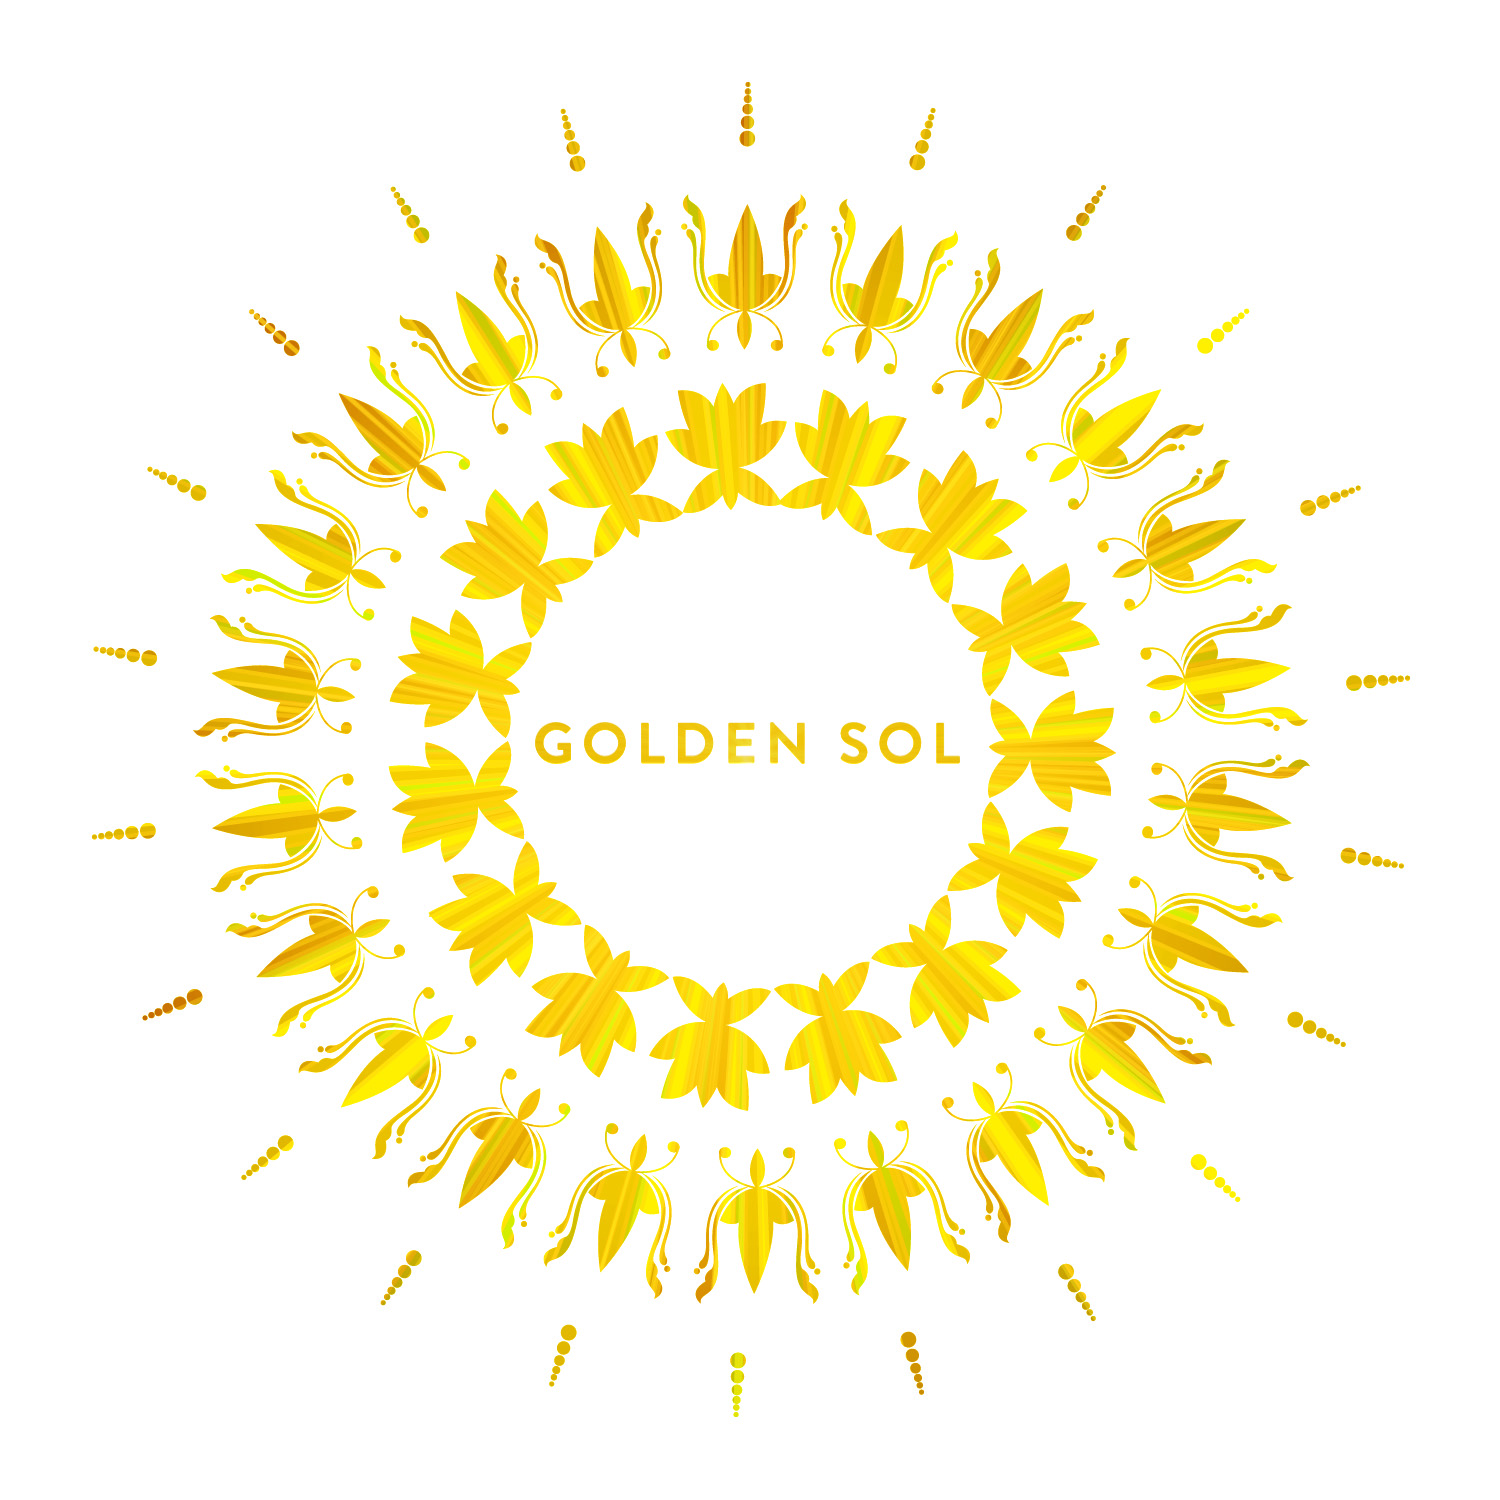 GOLDENSOL_NEW_LOGO_FIN (1).jpg